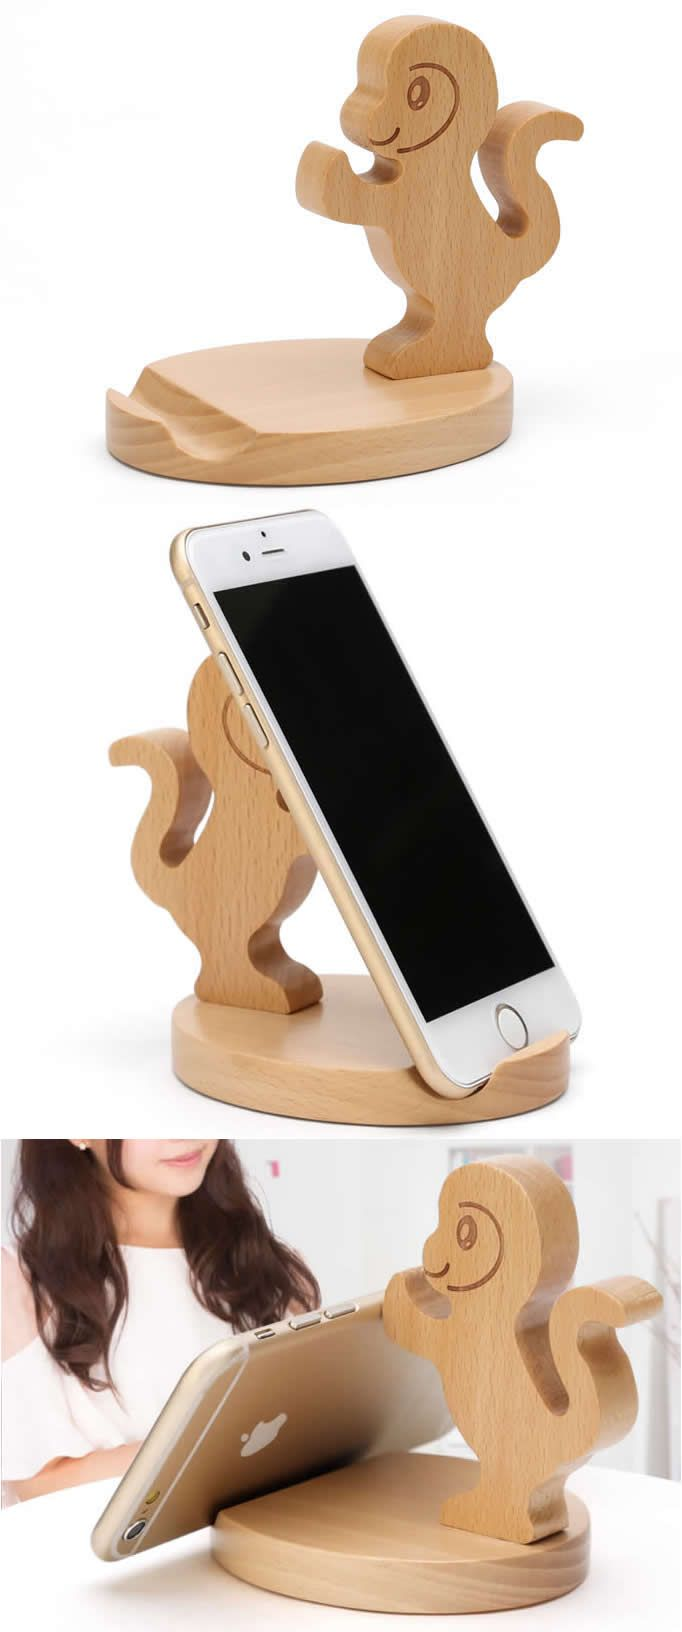 Cute Wooden Monkey Cell Phone Tablet Stand